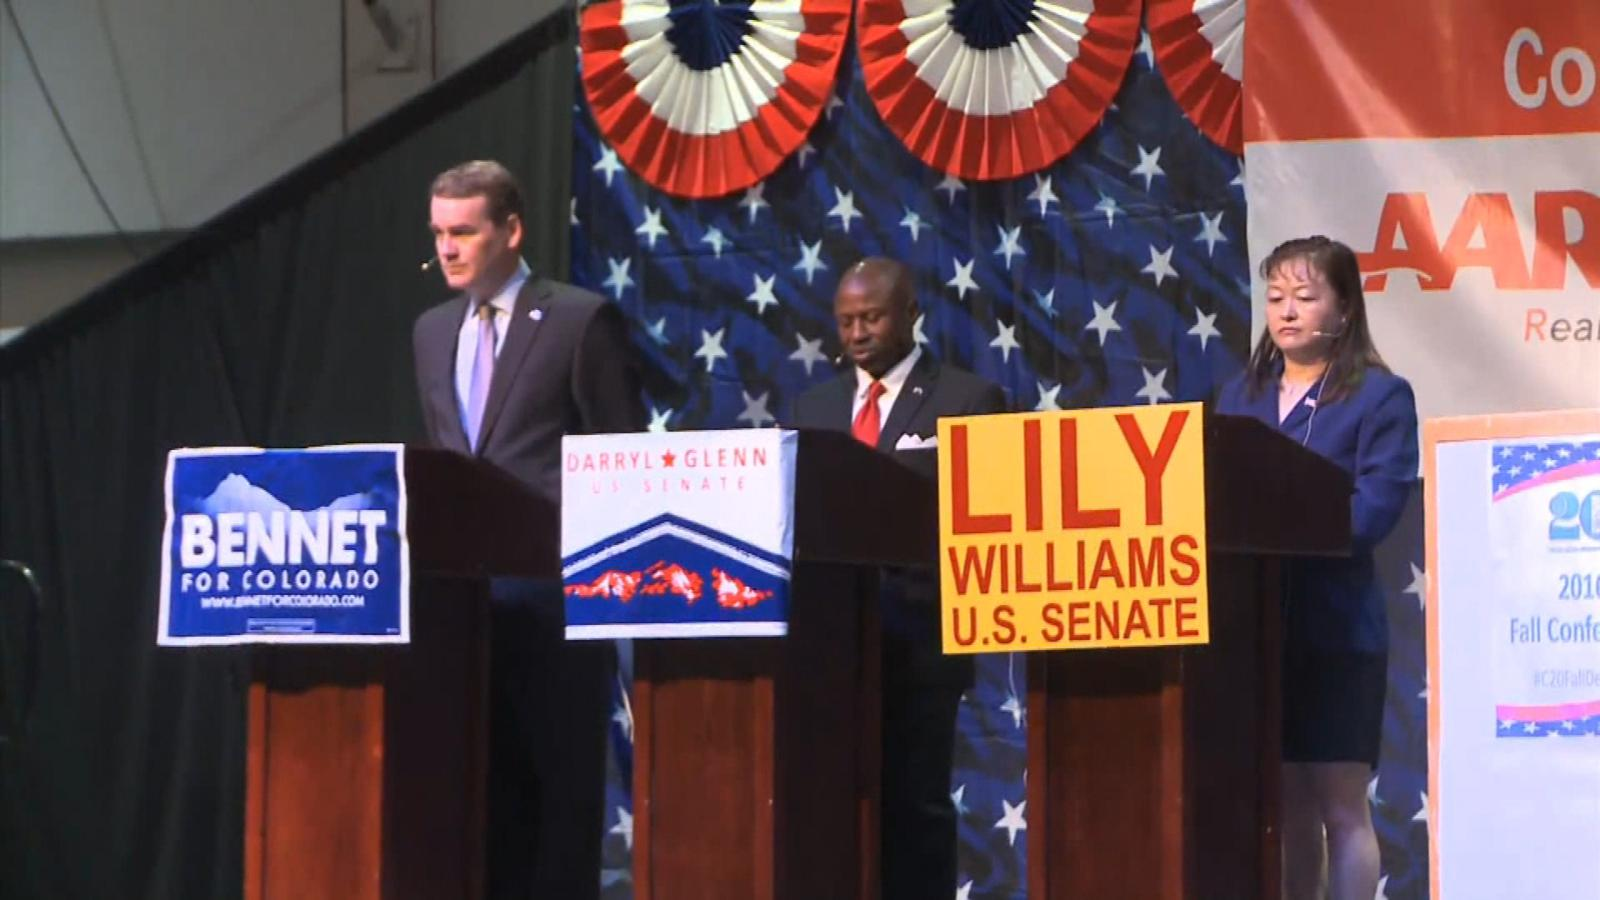 Michael Bennet, Darryl Glenn and Lily Williams (credit: CBS)